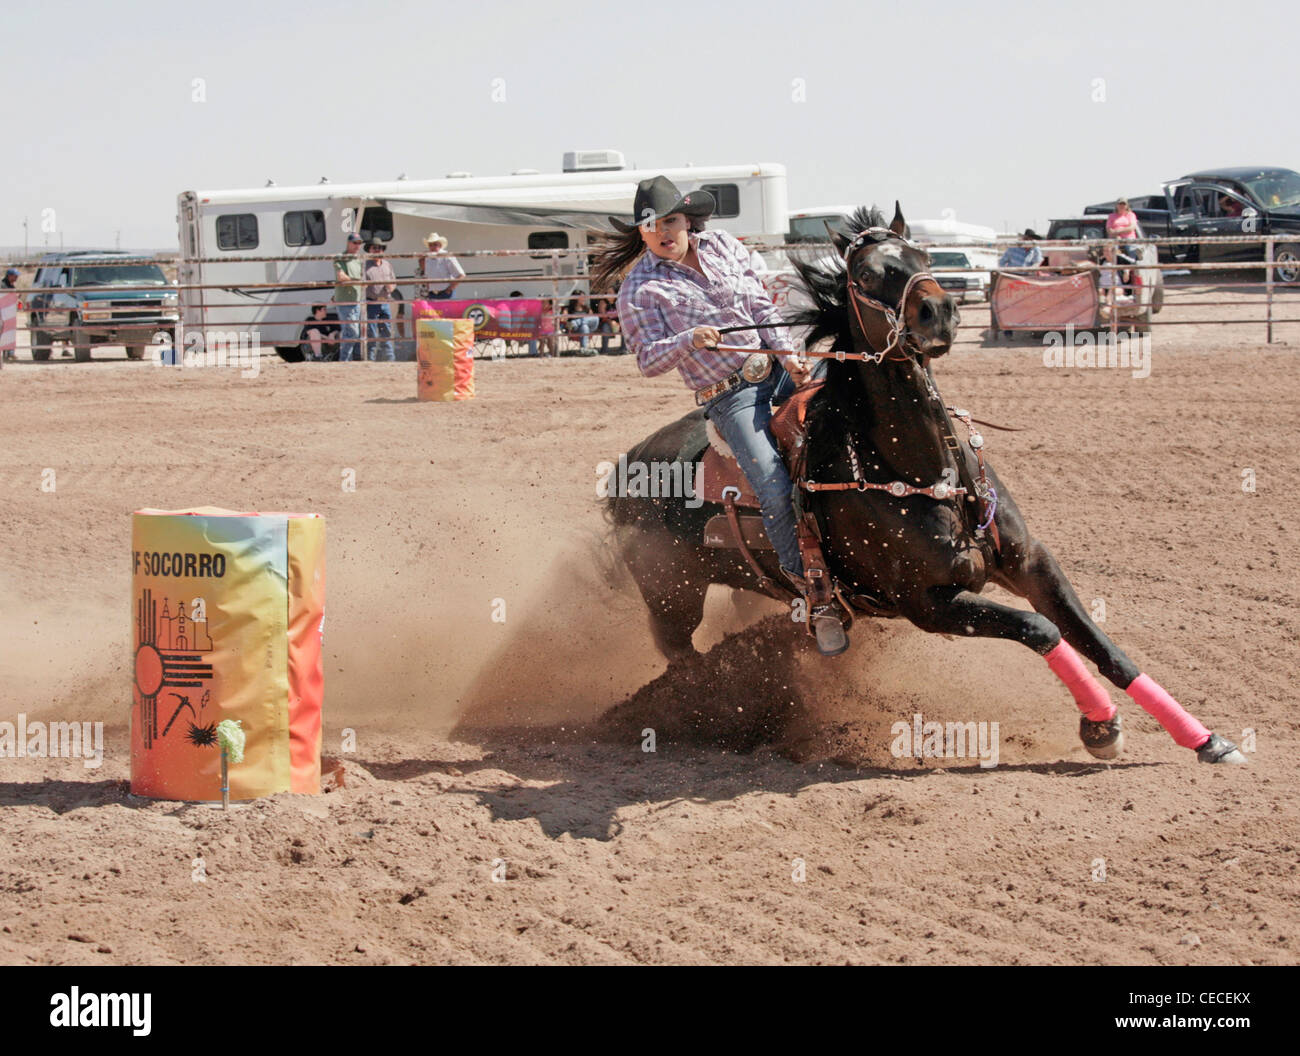 Socorro, New Mexico, USA. Woman taking part in the barrel racing event during the annual rodeo held in Socorro, - Stock Image